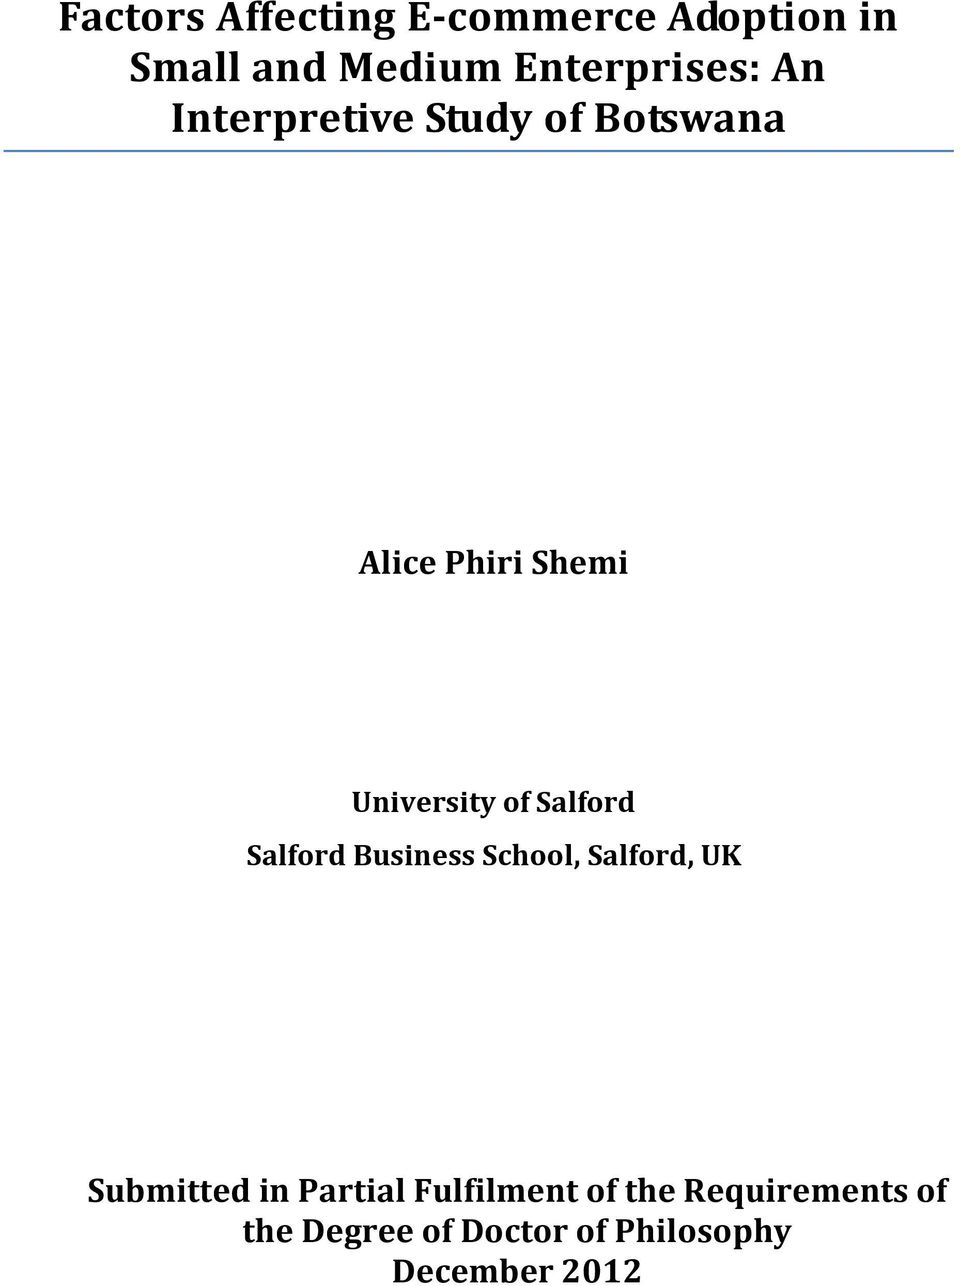 Salford Salford Business School, Salford, UK Submitted in Partial